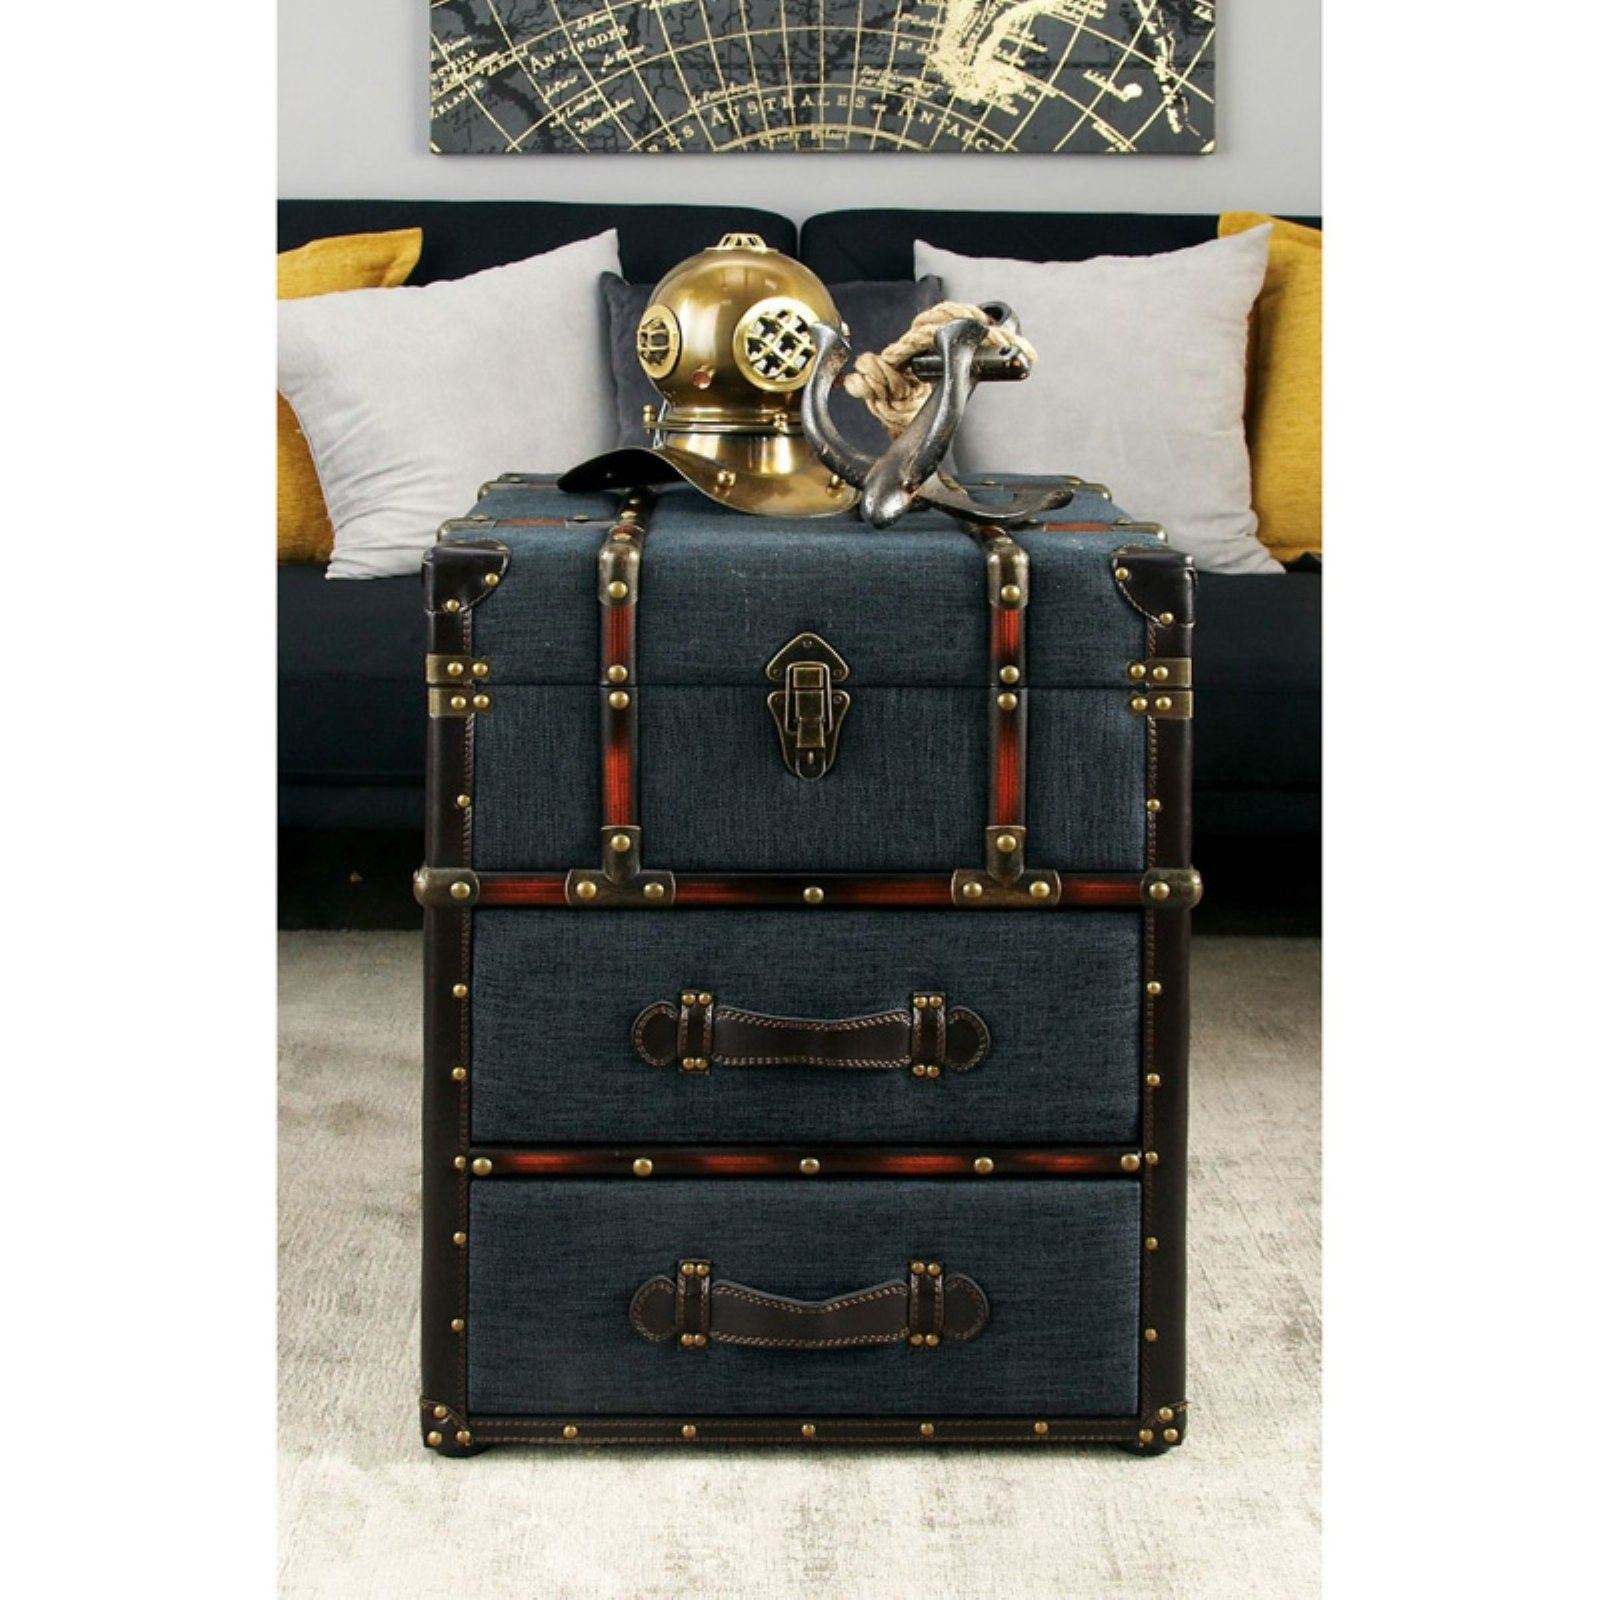 cases l industrial with chrome zazuminc fibre view tall chest luggage drawers corp com case salsesman leather boy suitcase larger